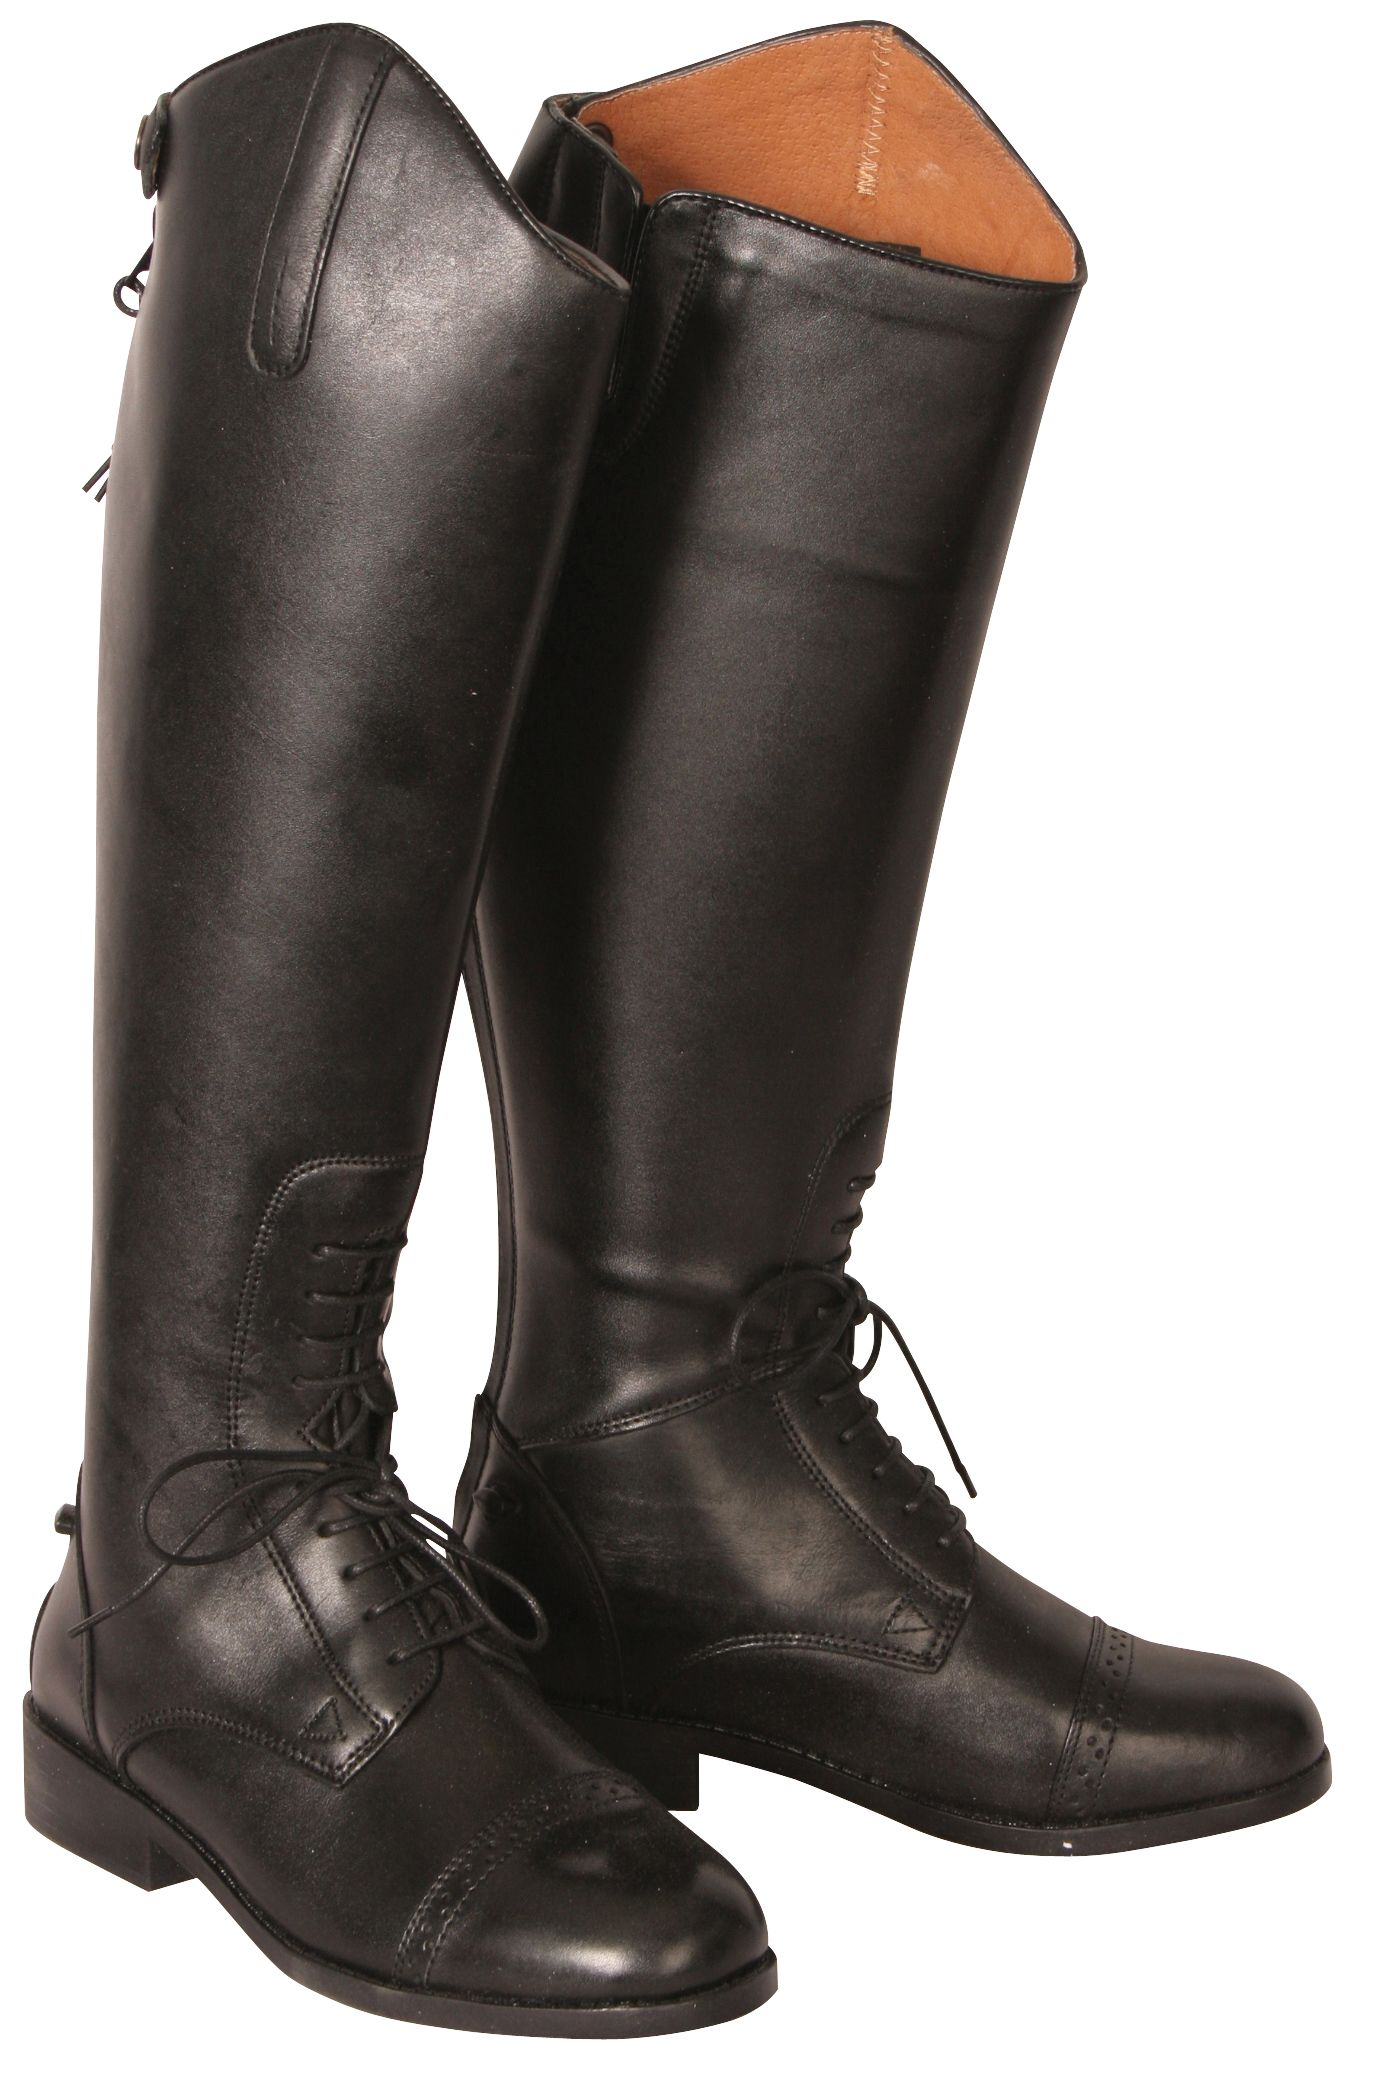 Dublin RCS Aristocrat Zip Back Field Boot